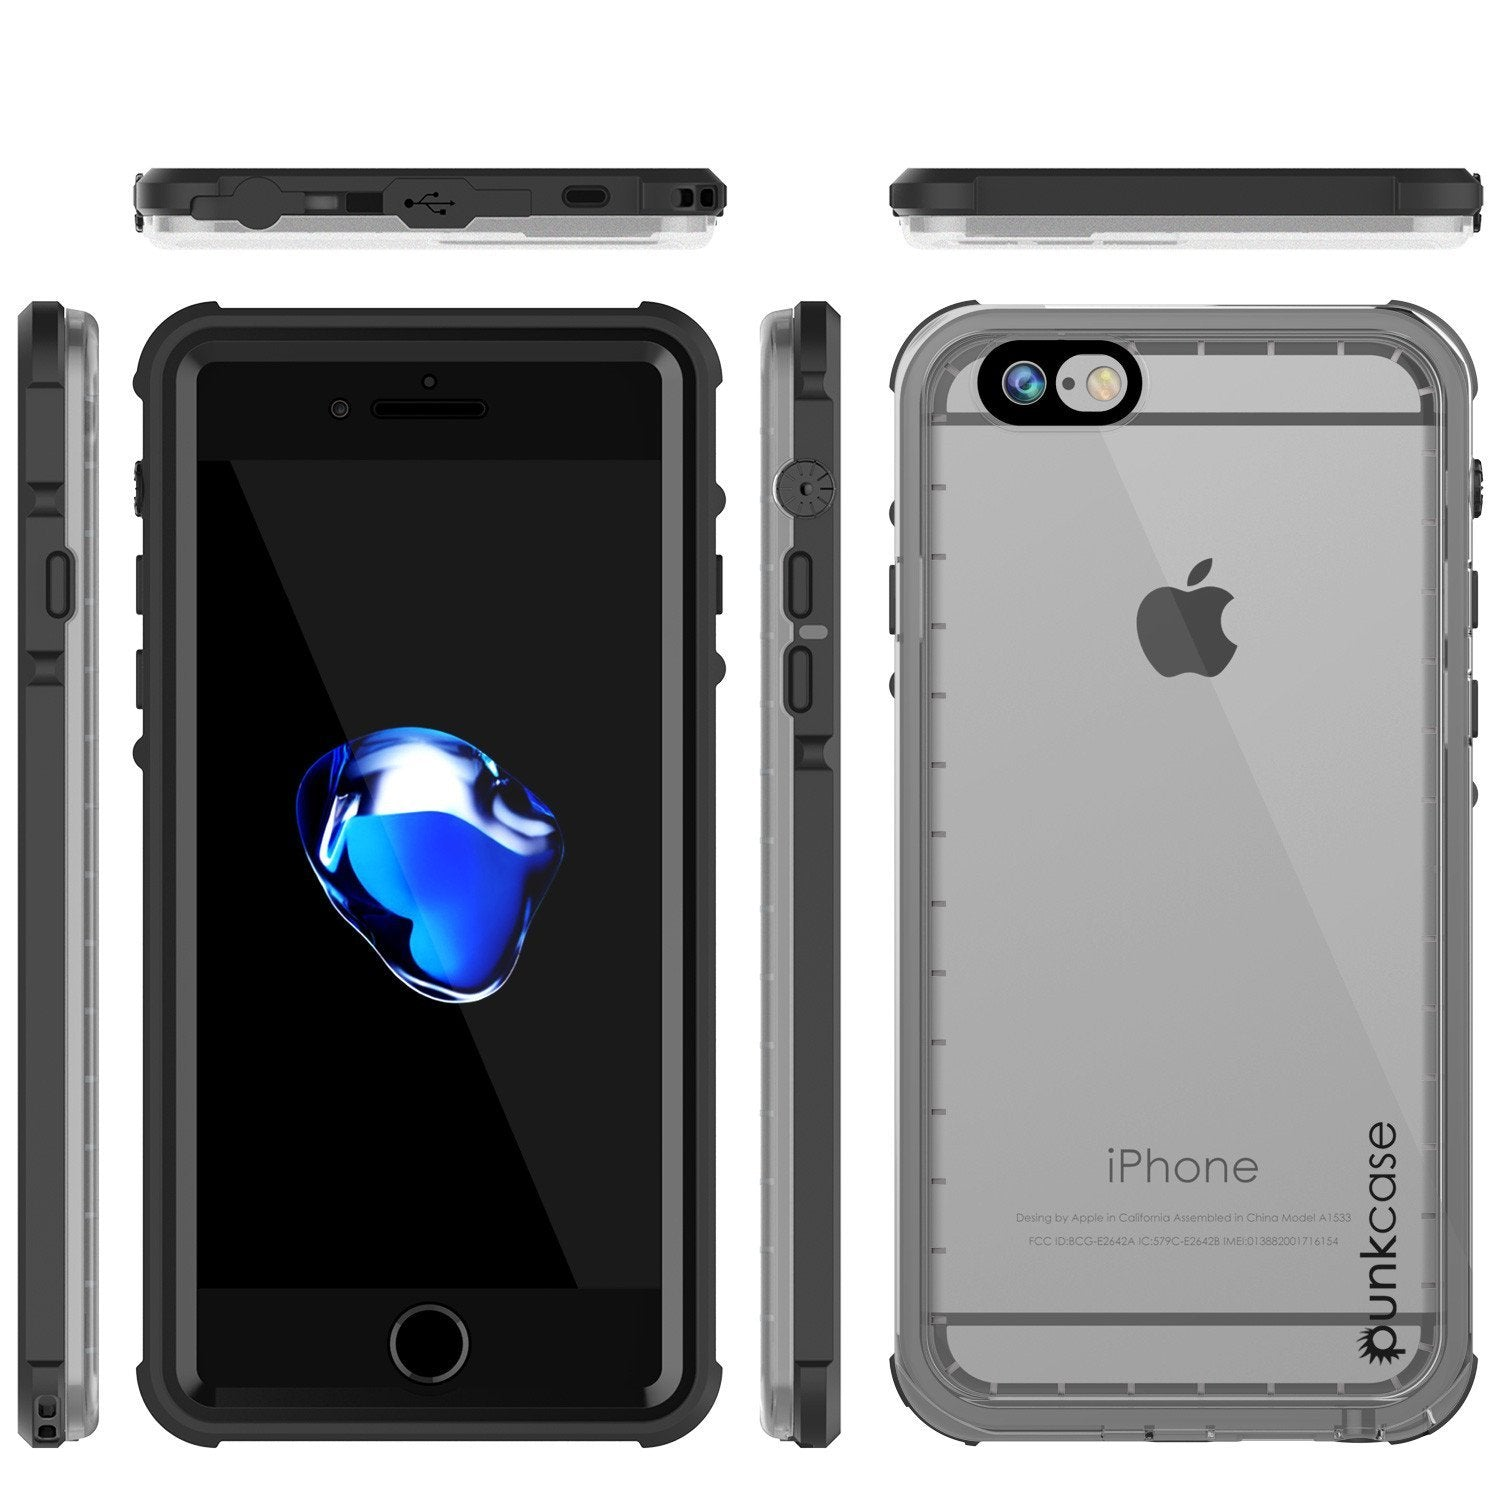 Apple iPhone 8 Waterproof Case, PUNKcase CRYSTAL Black W/ Attached Screen Protector  | Warranty